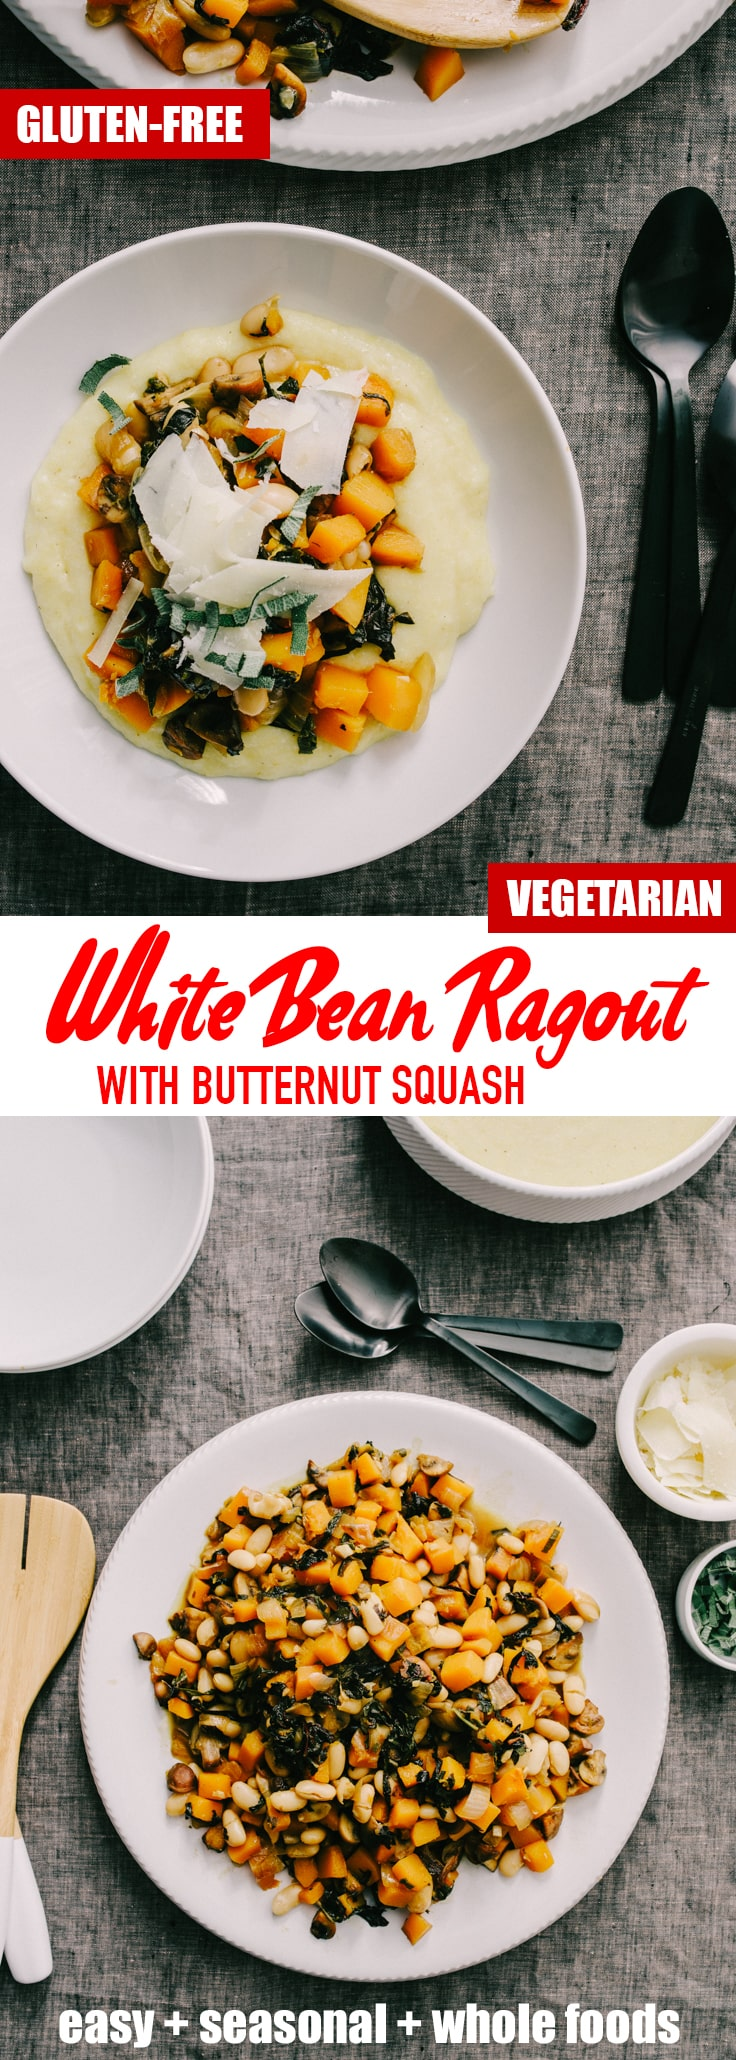 This white bean ragout with butternut squash and mushrooms is a hearty, super nutritious cool weather recipe. It's hearty enough to stand on it's own, but you can also serve this vegetarian one pot stew over polenta, rice, or crusty bread, or for a grain-free option, pureed or riced cauliflower. #vegetarian #stew #fallrecipe #winterrecipe #onepot #ragout